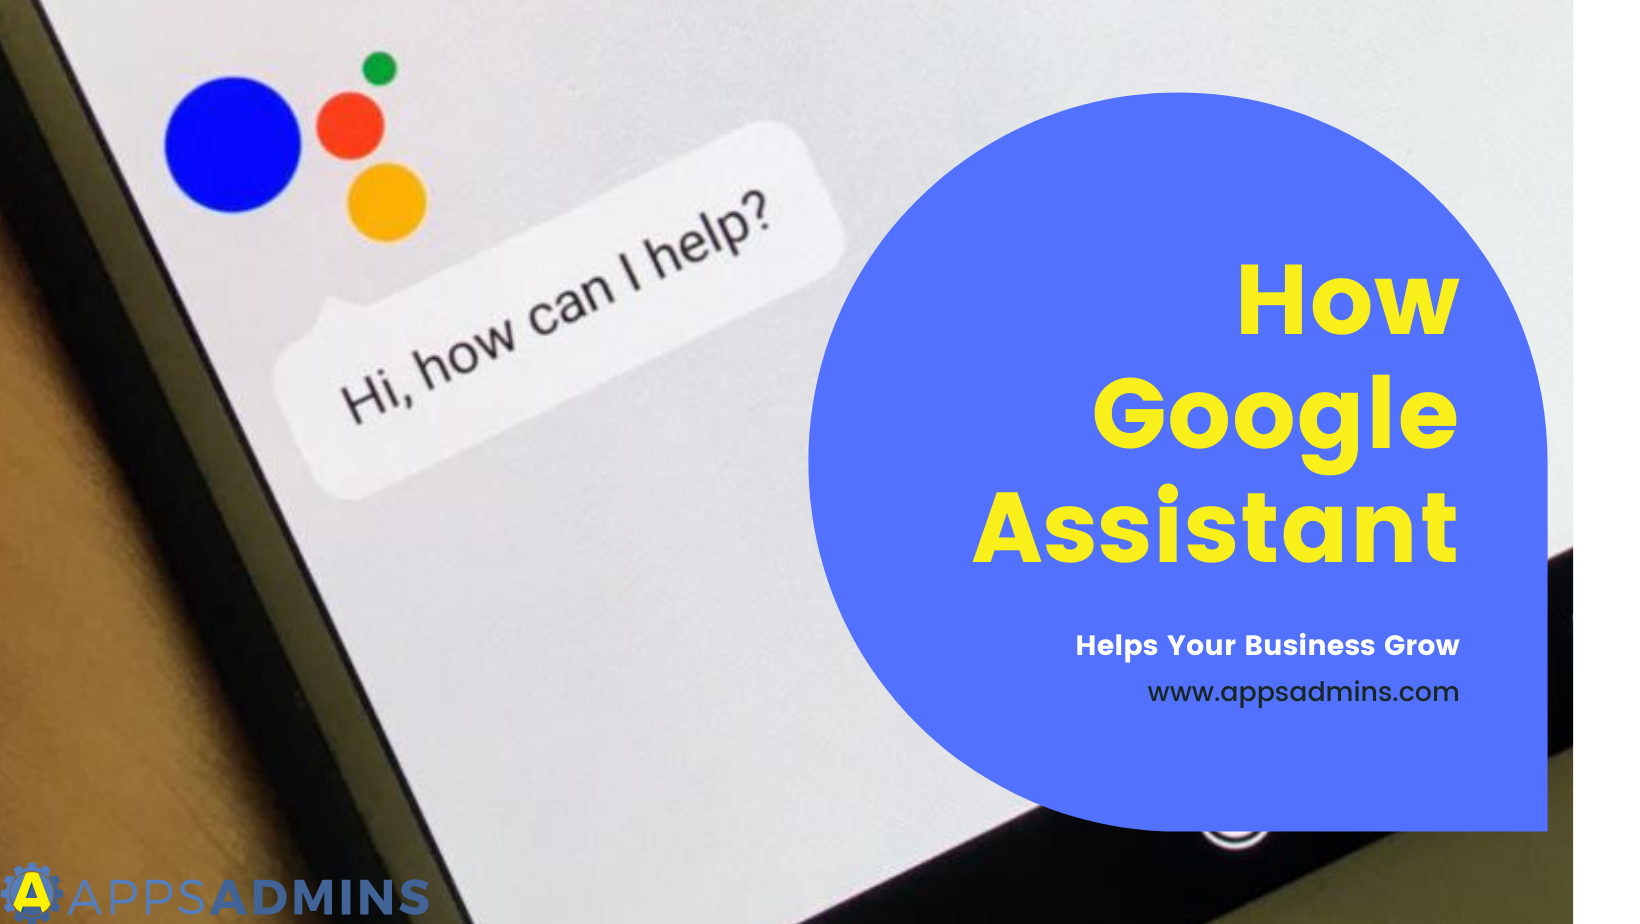 How Google Assistant Helps Business Growth